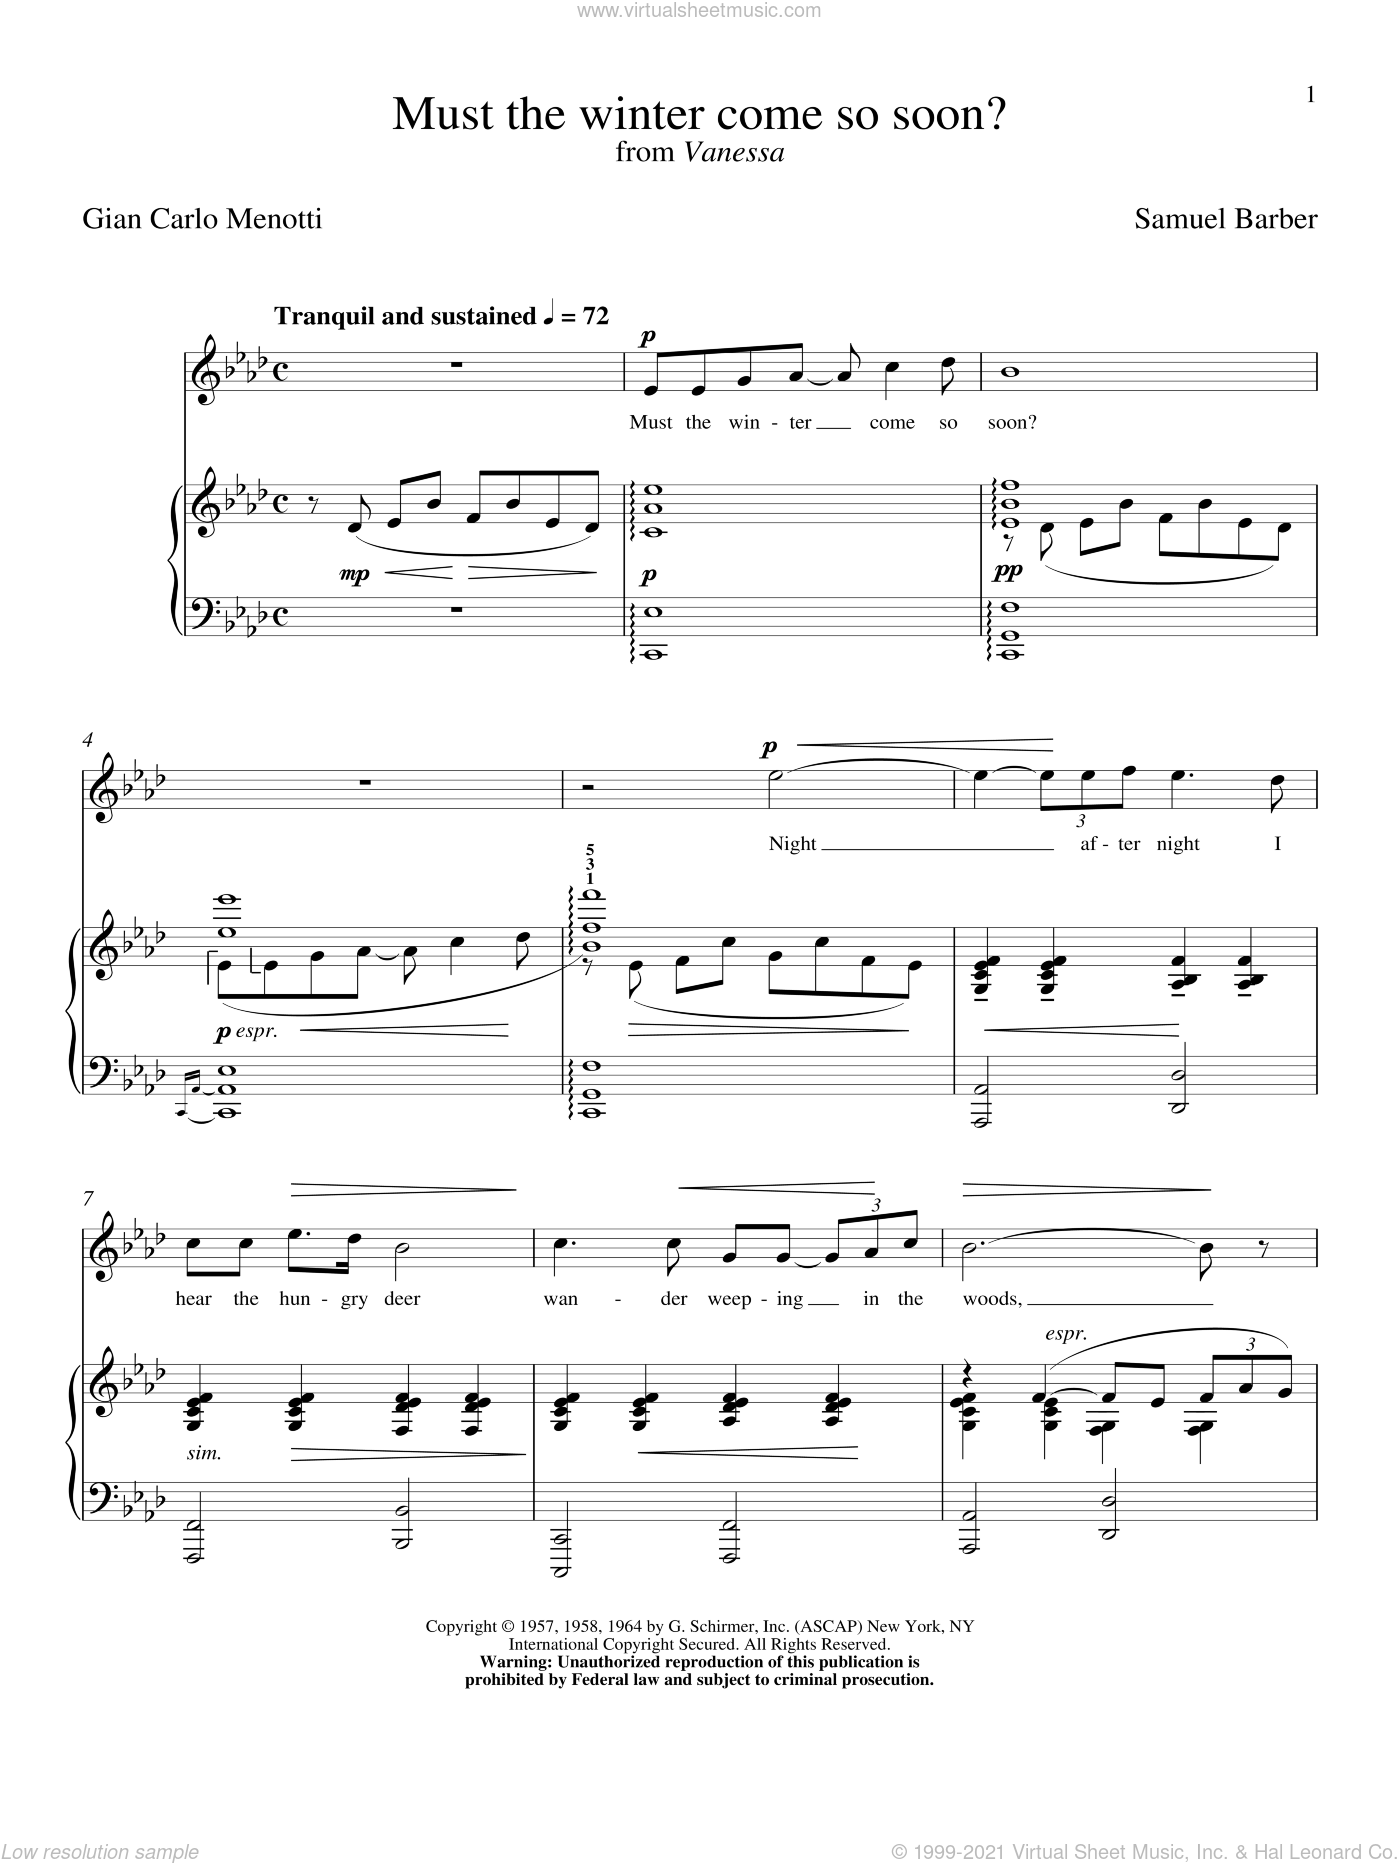 Must The Winter Come So Soon? sheet music for voice and piano by Samuel Barber and Robert L. Larsen, classical score, intermediate skill level